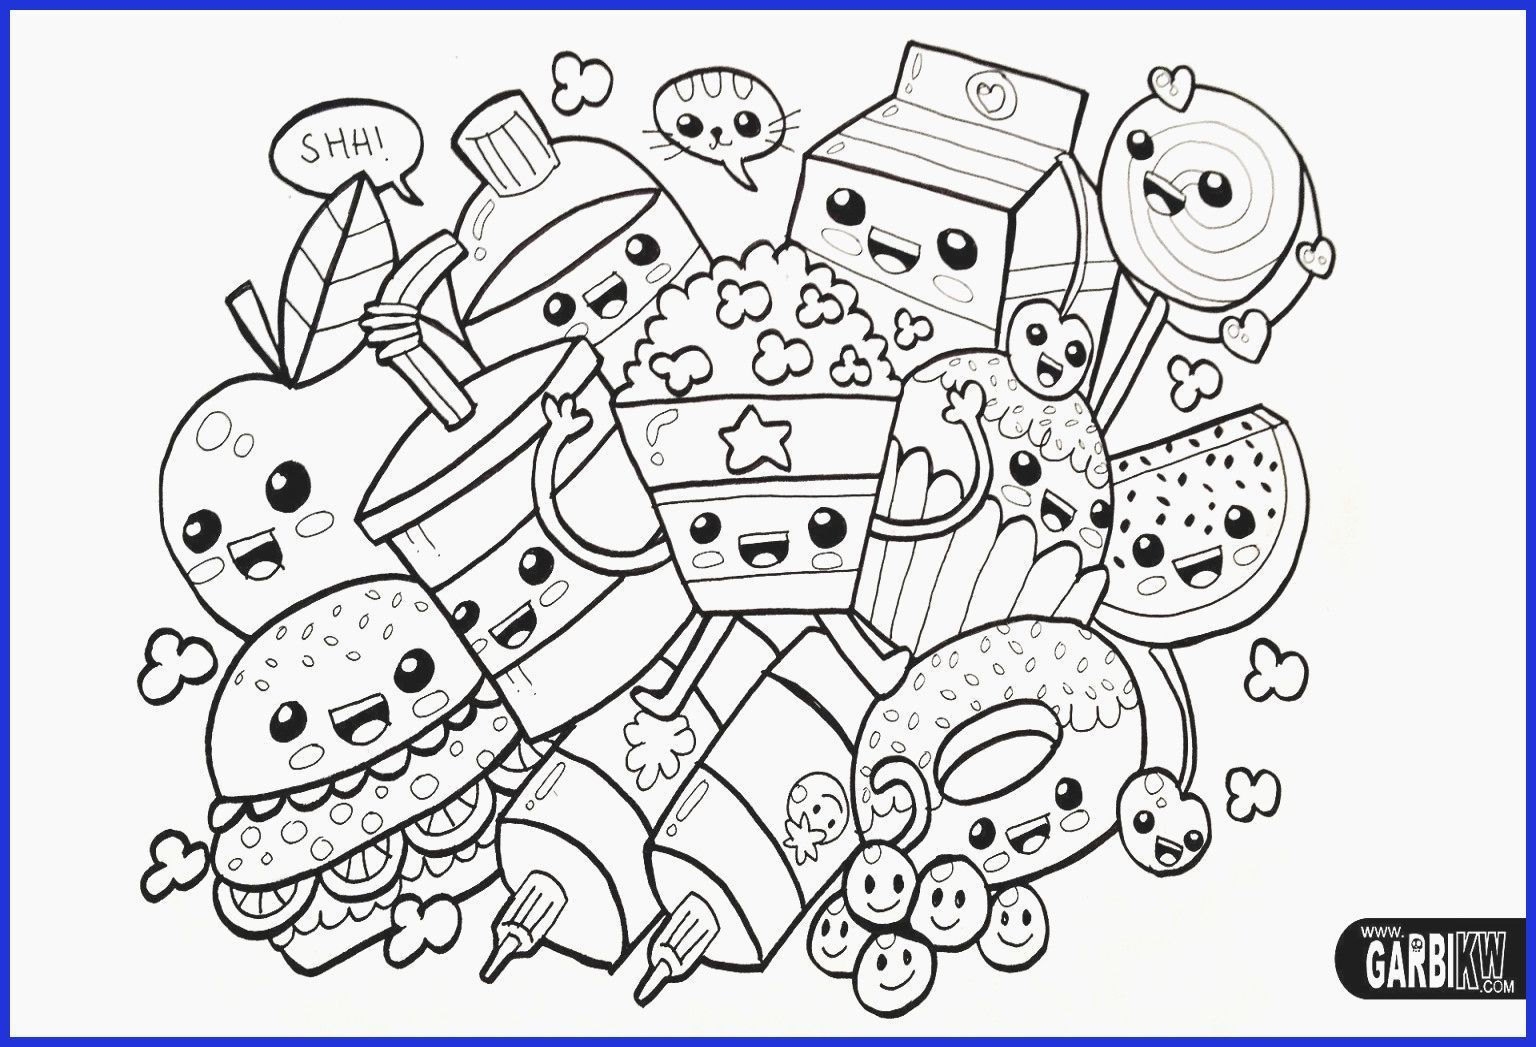 Anime Coloring Page Kawaii Beautiful Cute Anime Coloring Pages Unique 52 Most Supreme Girls In 2020 Unicorn Coloring Pages Animal Coloring Books Animal Coloring Pages